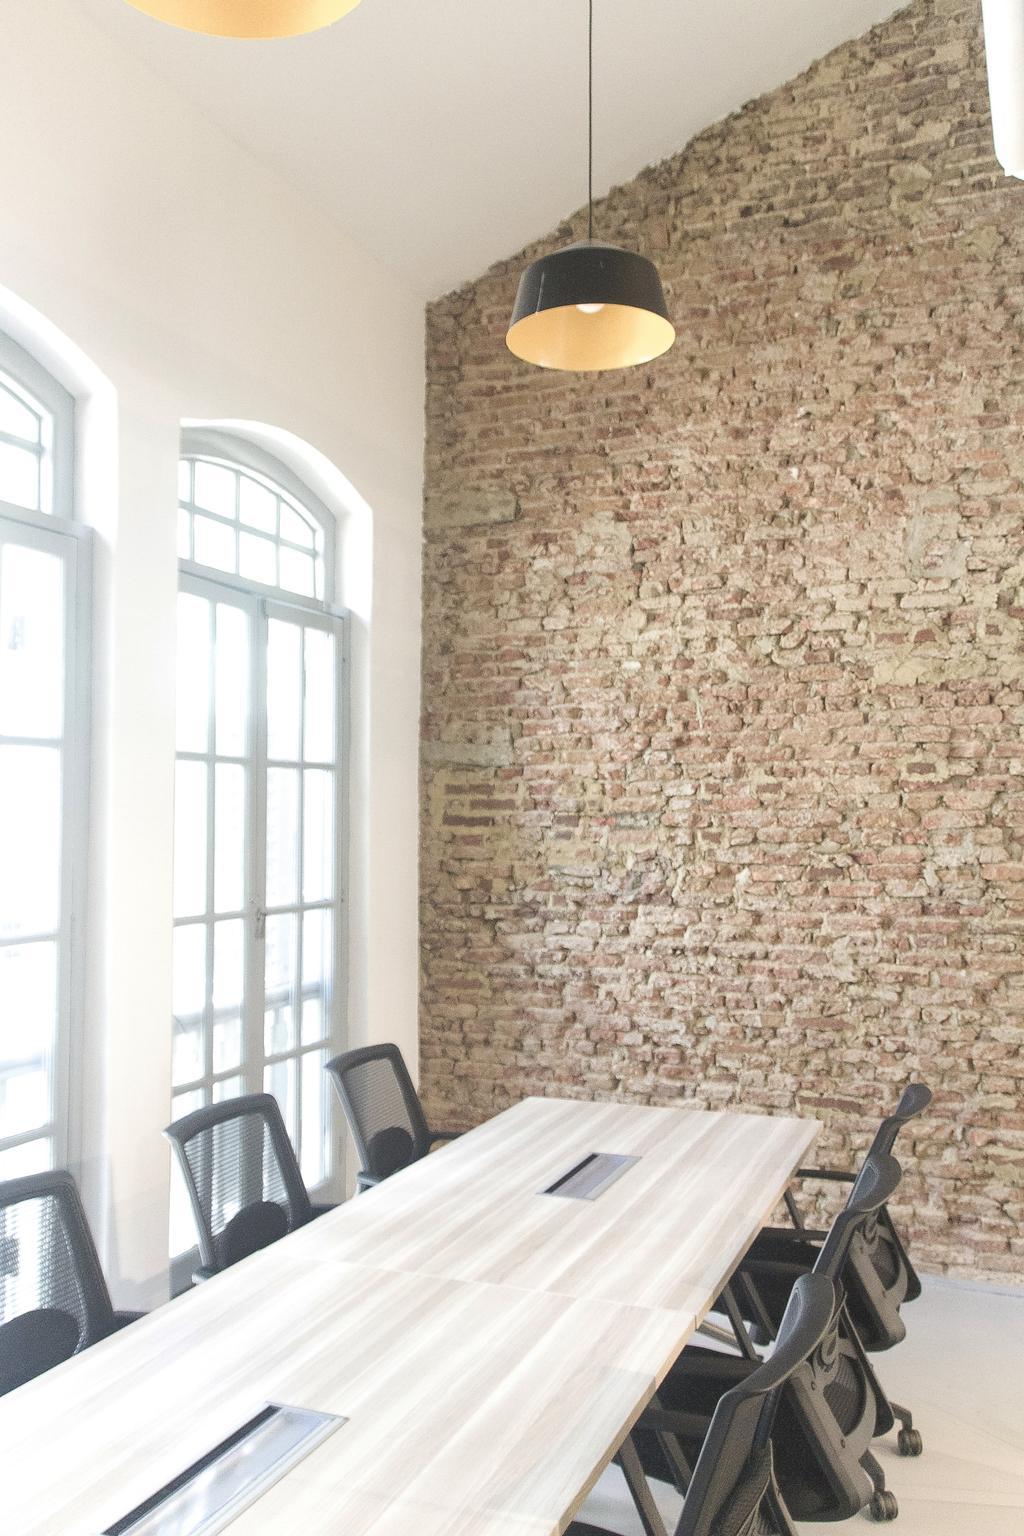 19 Cantonment, Commercial, Architect, PROVOLK ARCHITECTS, Modern, Window, Wall, Brick